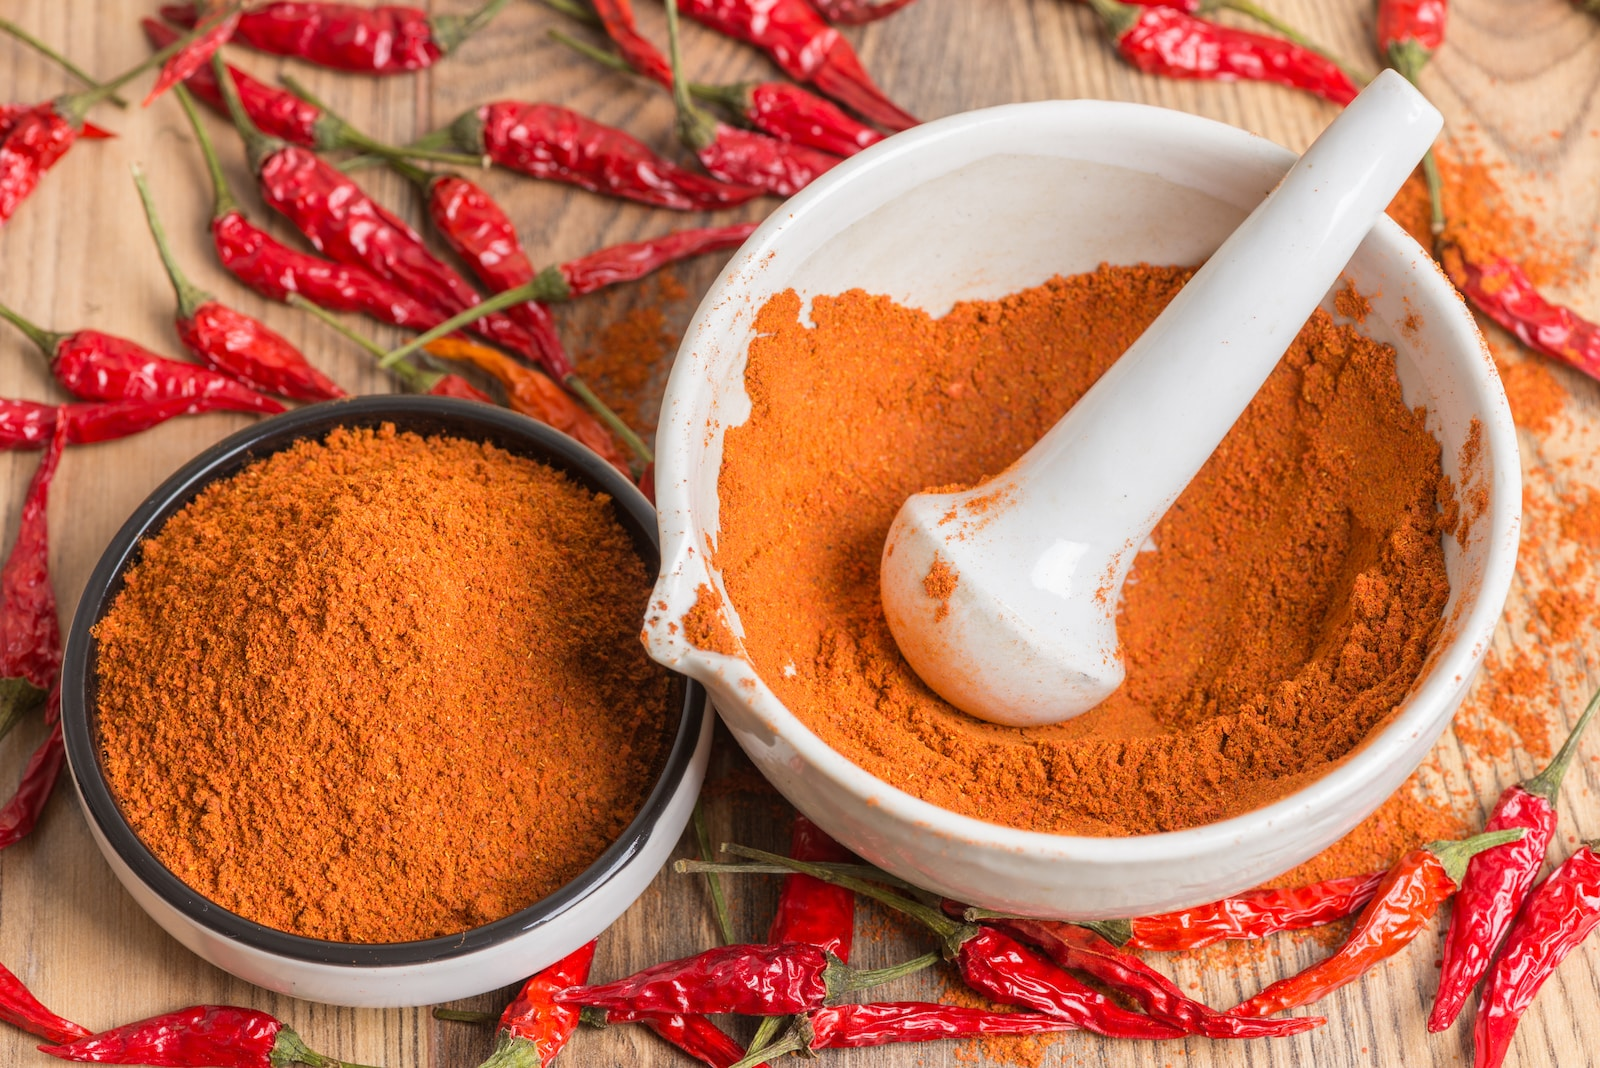 Is Chili Powder Spicy?